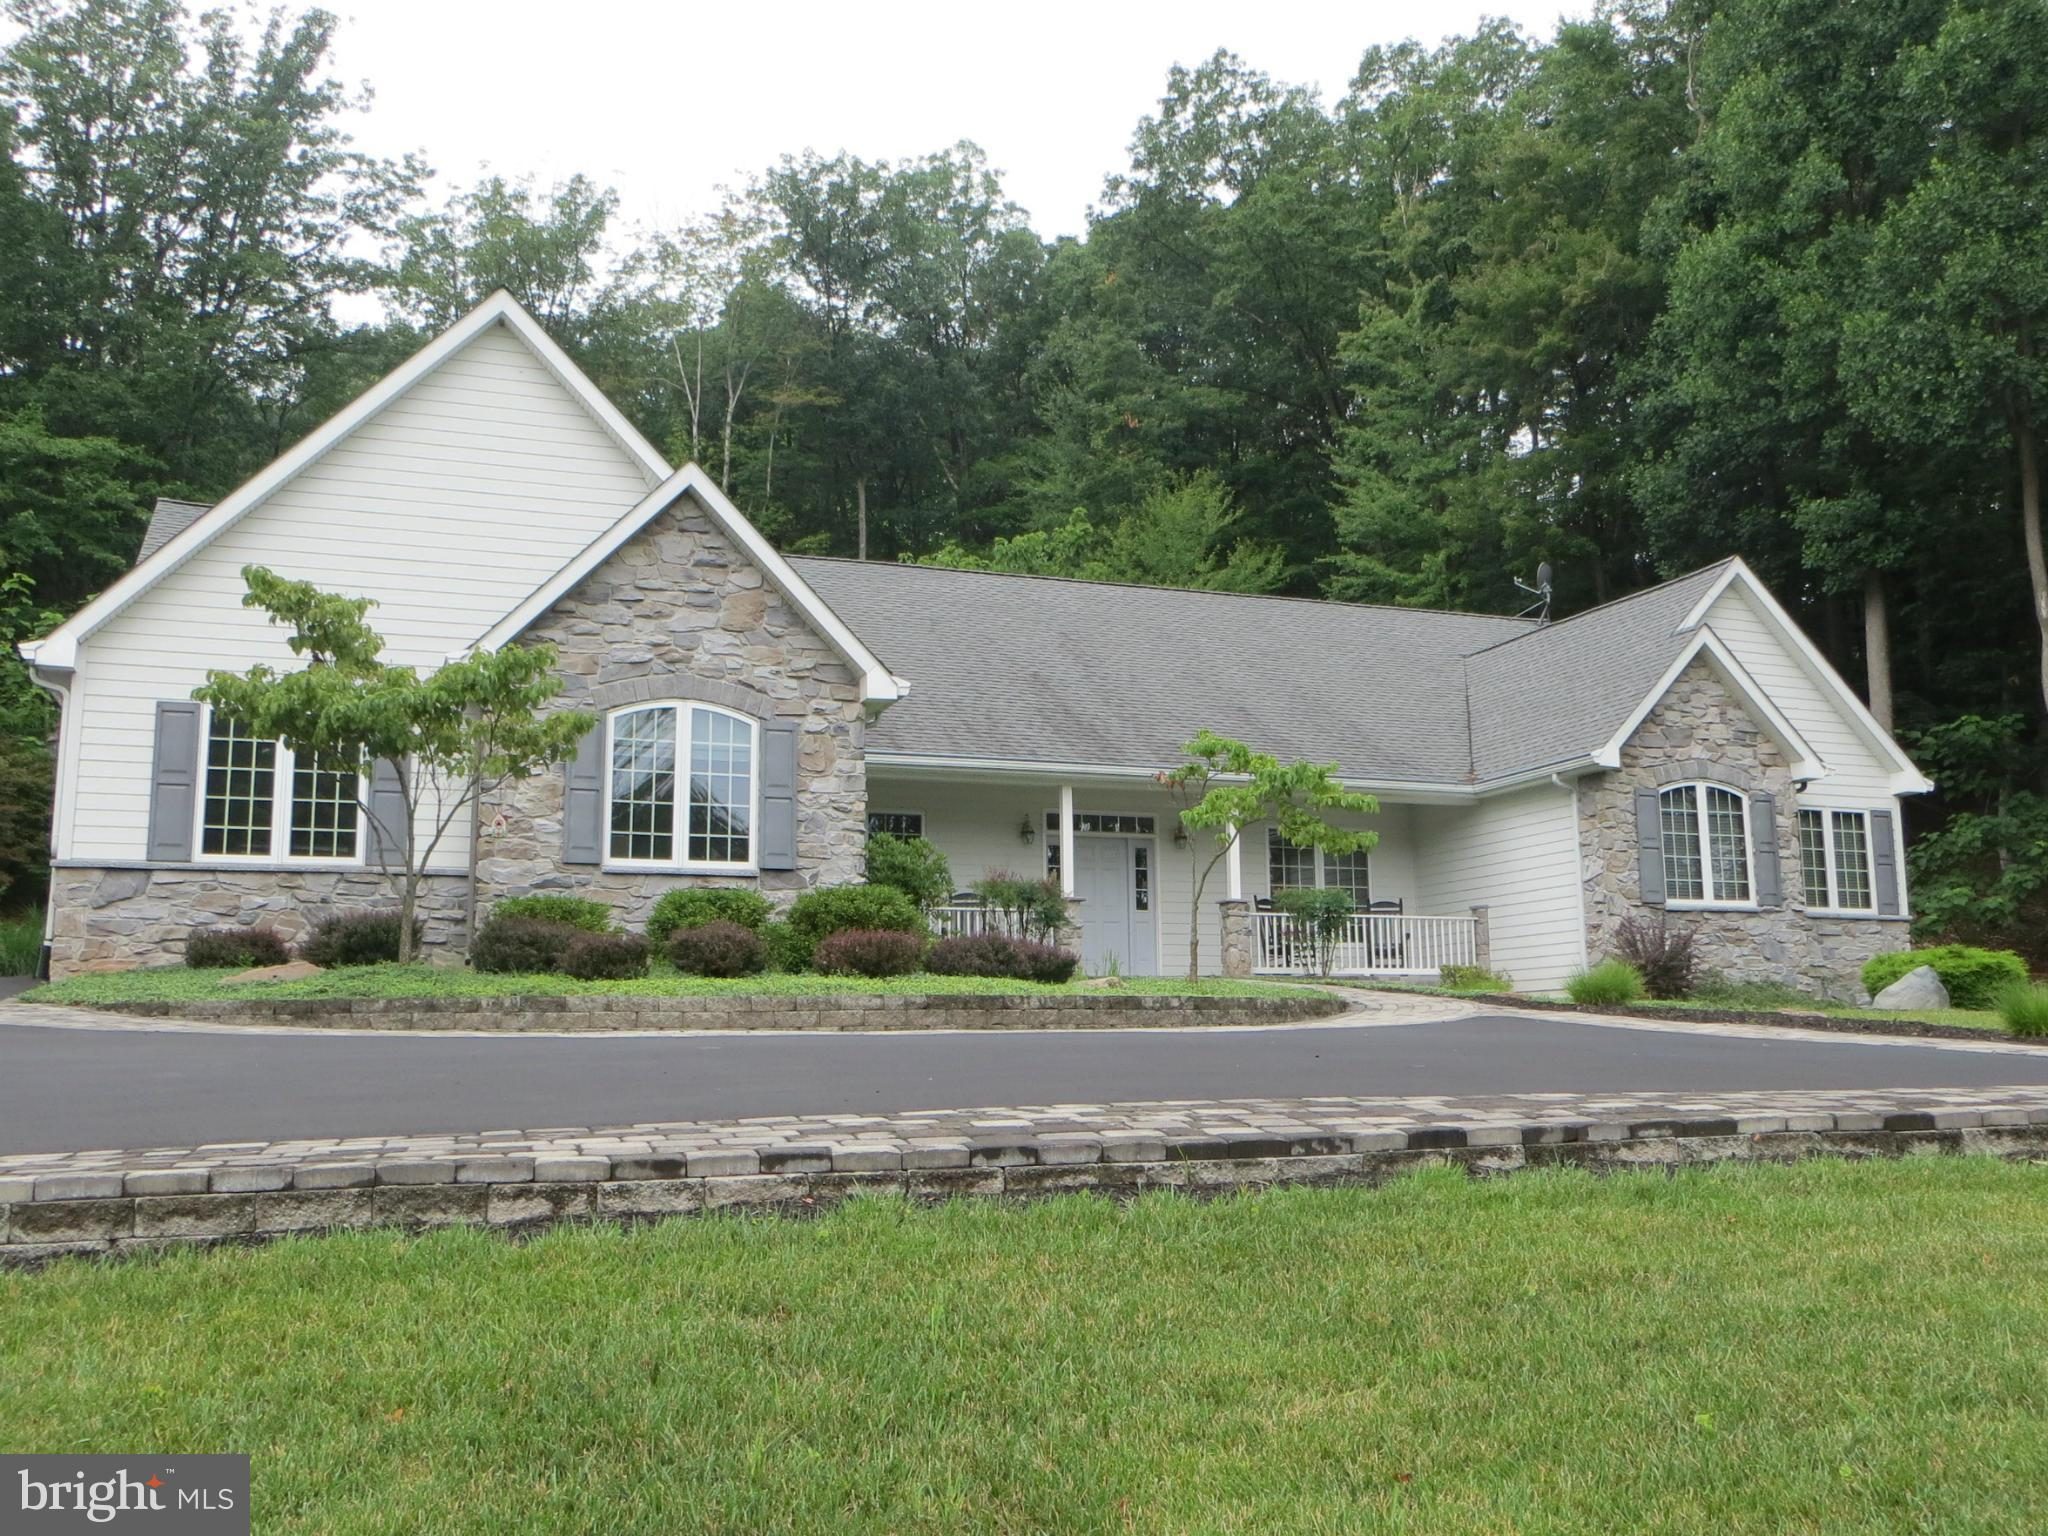 1811 WINTERCAMP TRAIL, HEDGESVILLE, WV 25427